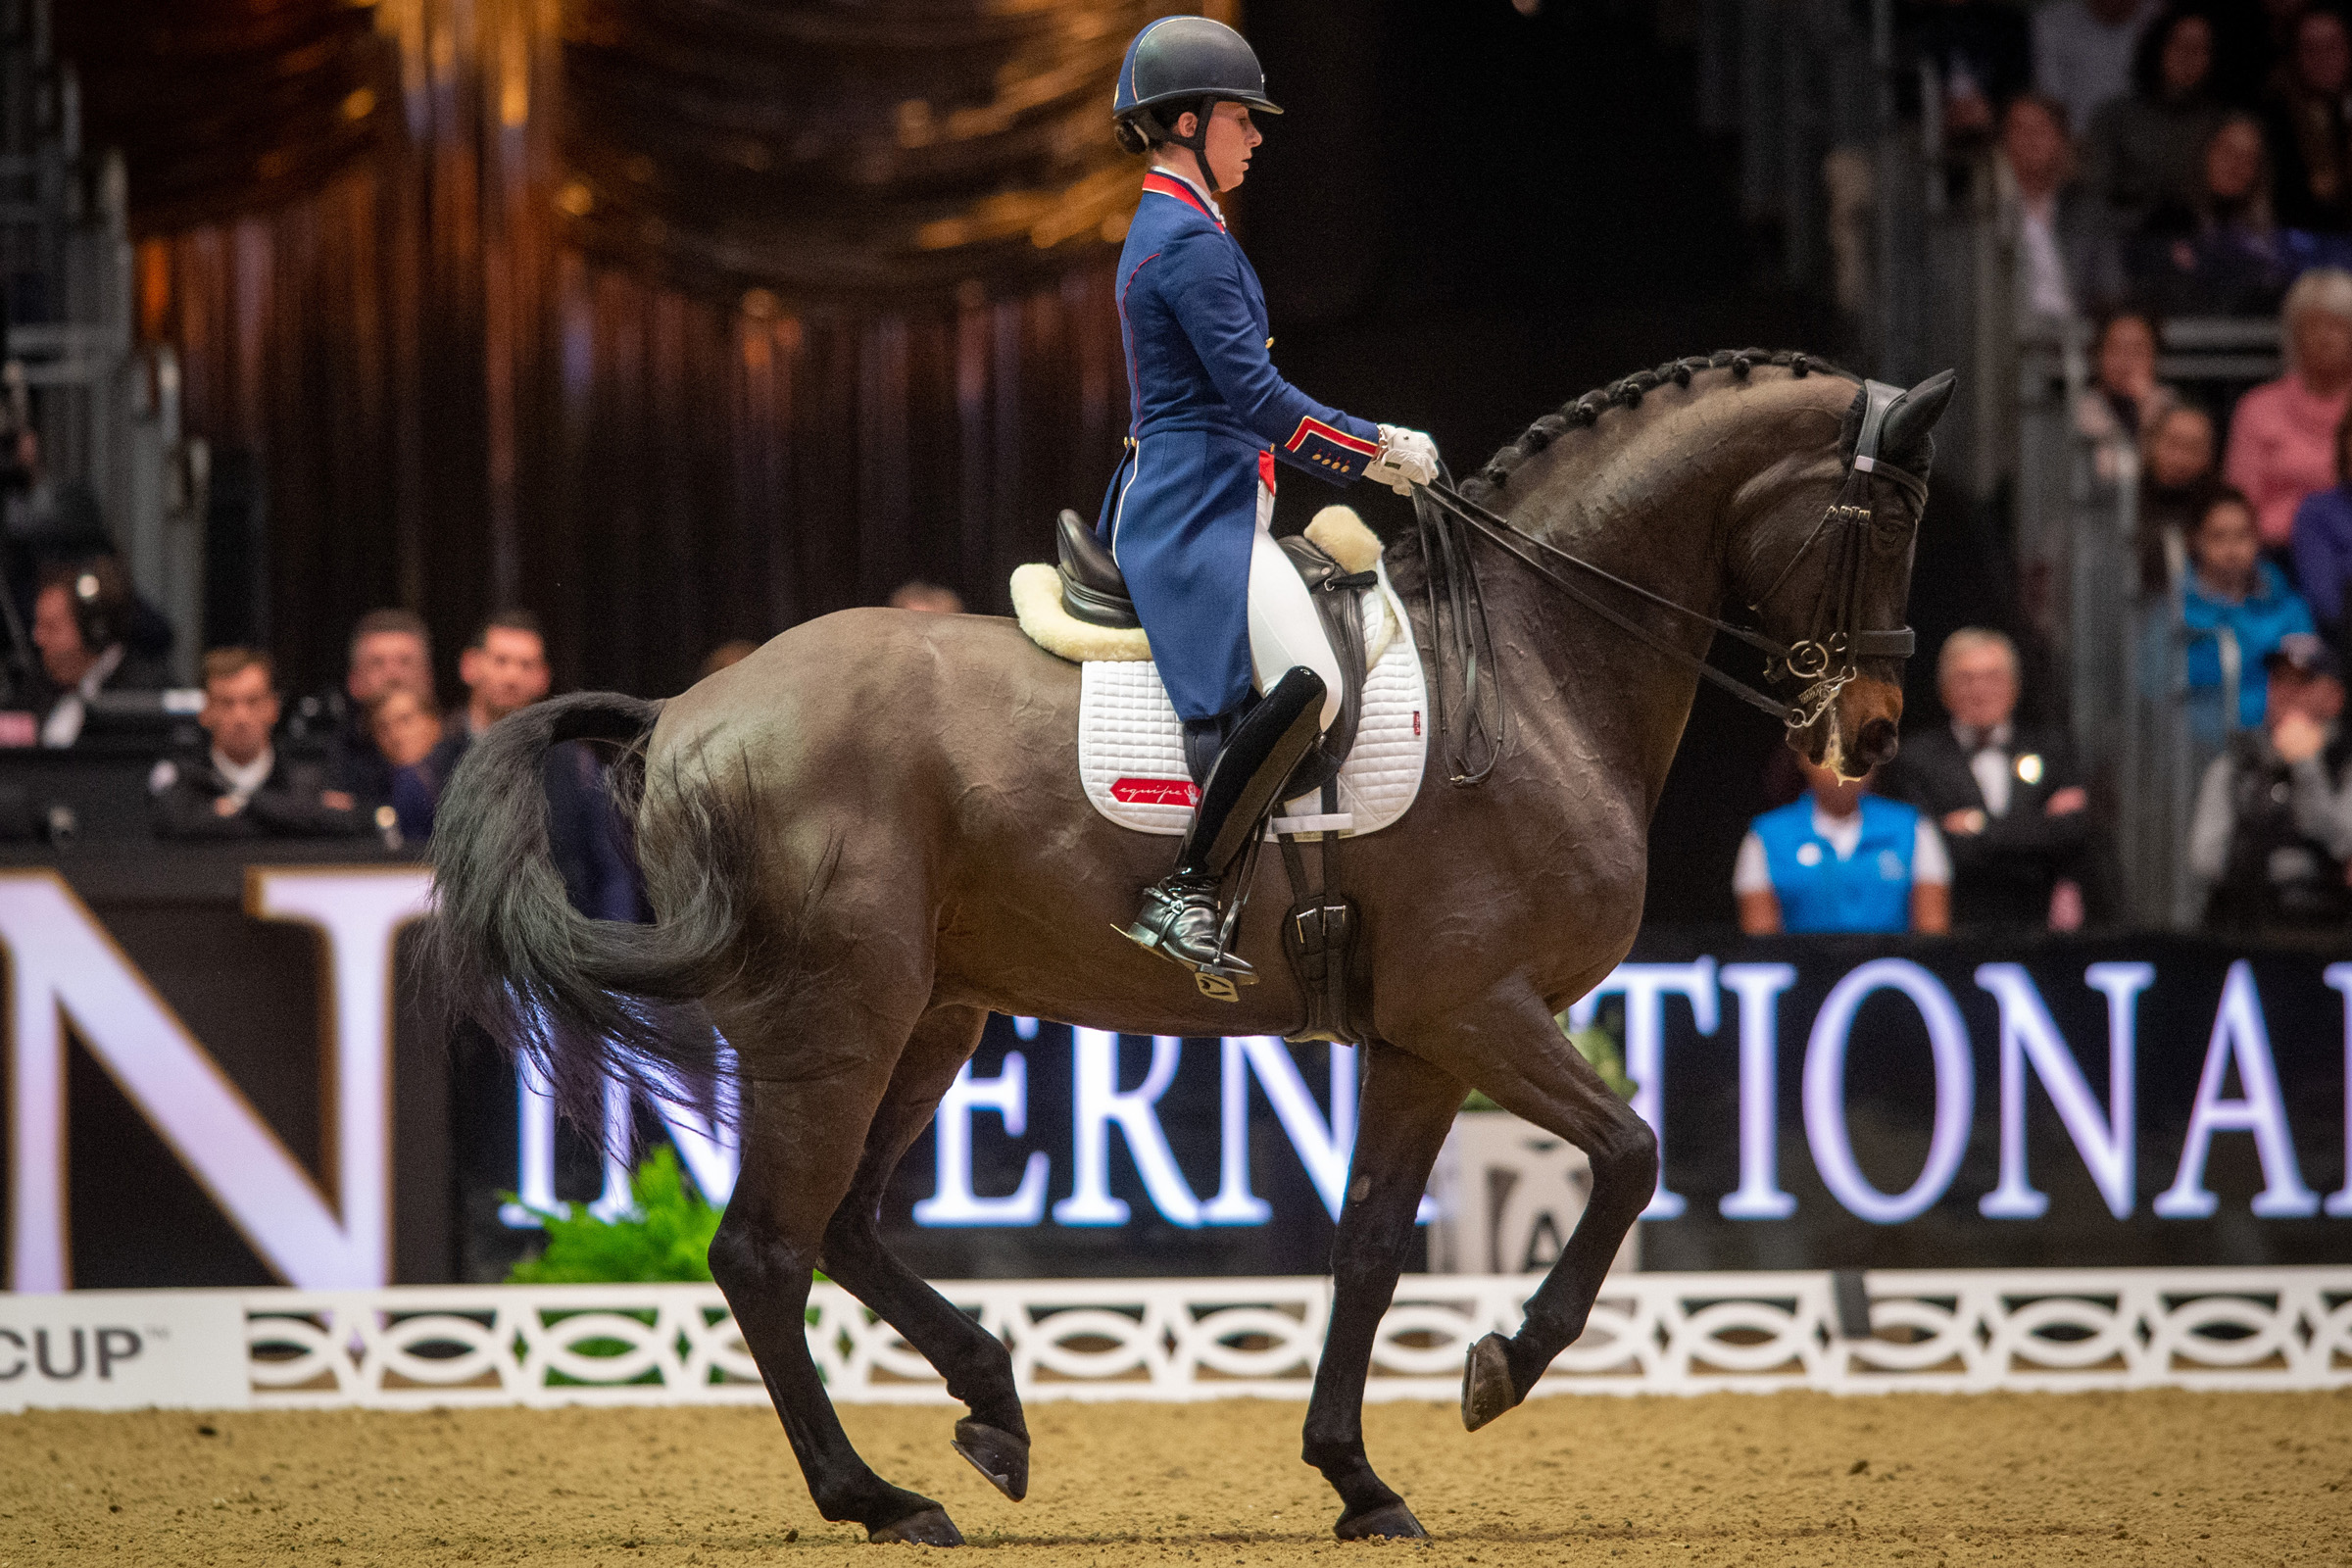 Olympia, The London International Horse Show 2018